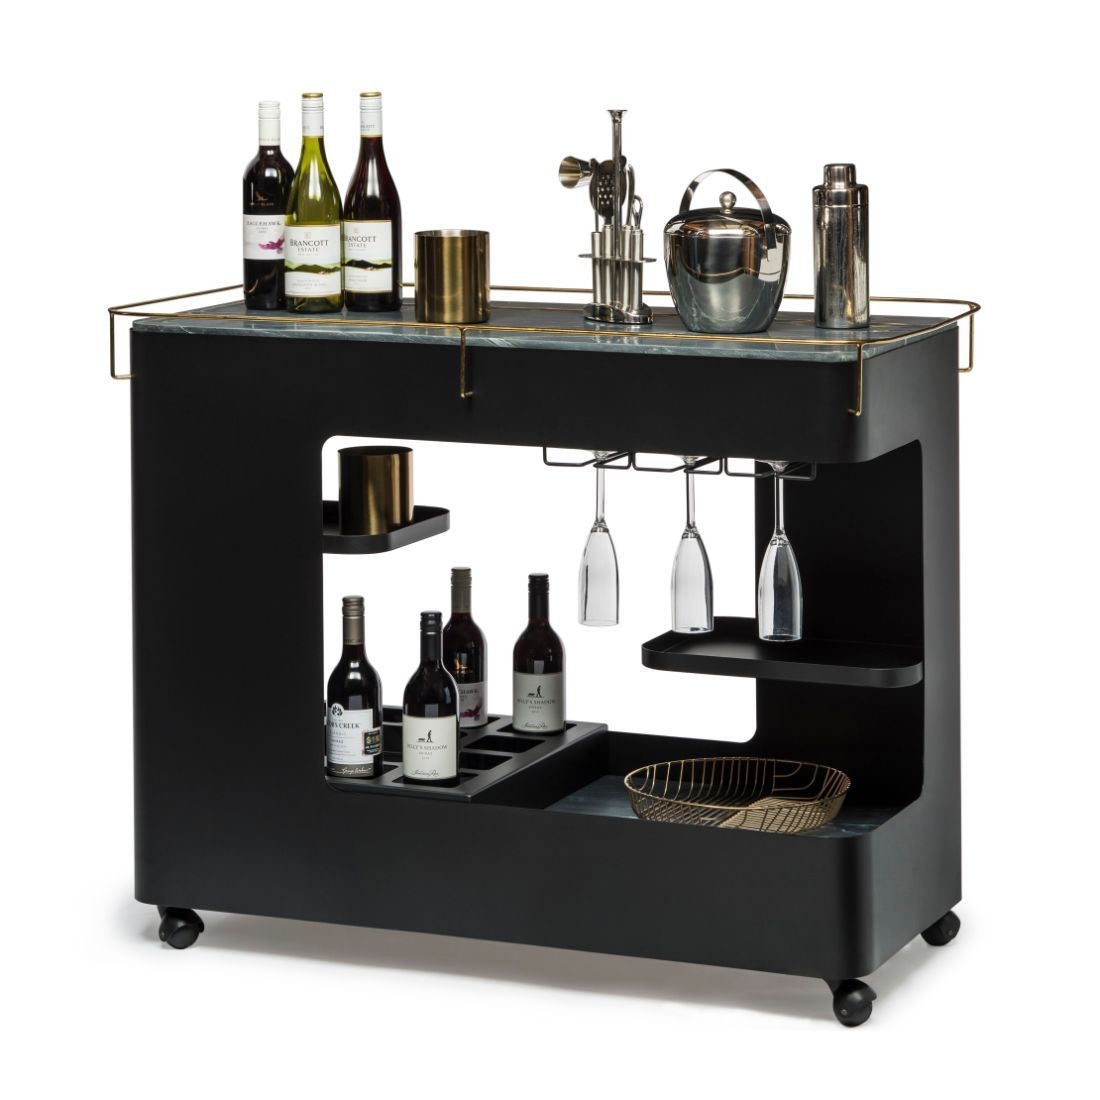 Black Gold Bar Cabinet Cart Contemporary Drinks Trolley Wine Storage With Marble Top In 2020 Wine Storage Modern Drinks Cabinet Bar Cabinet